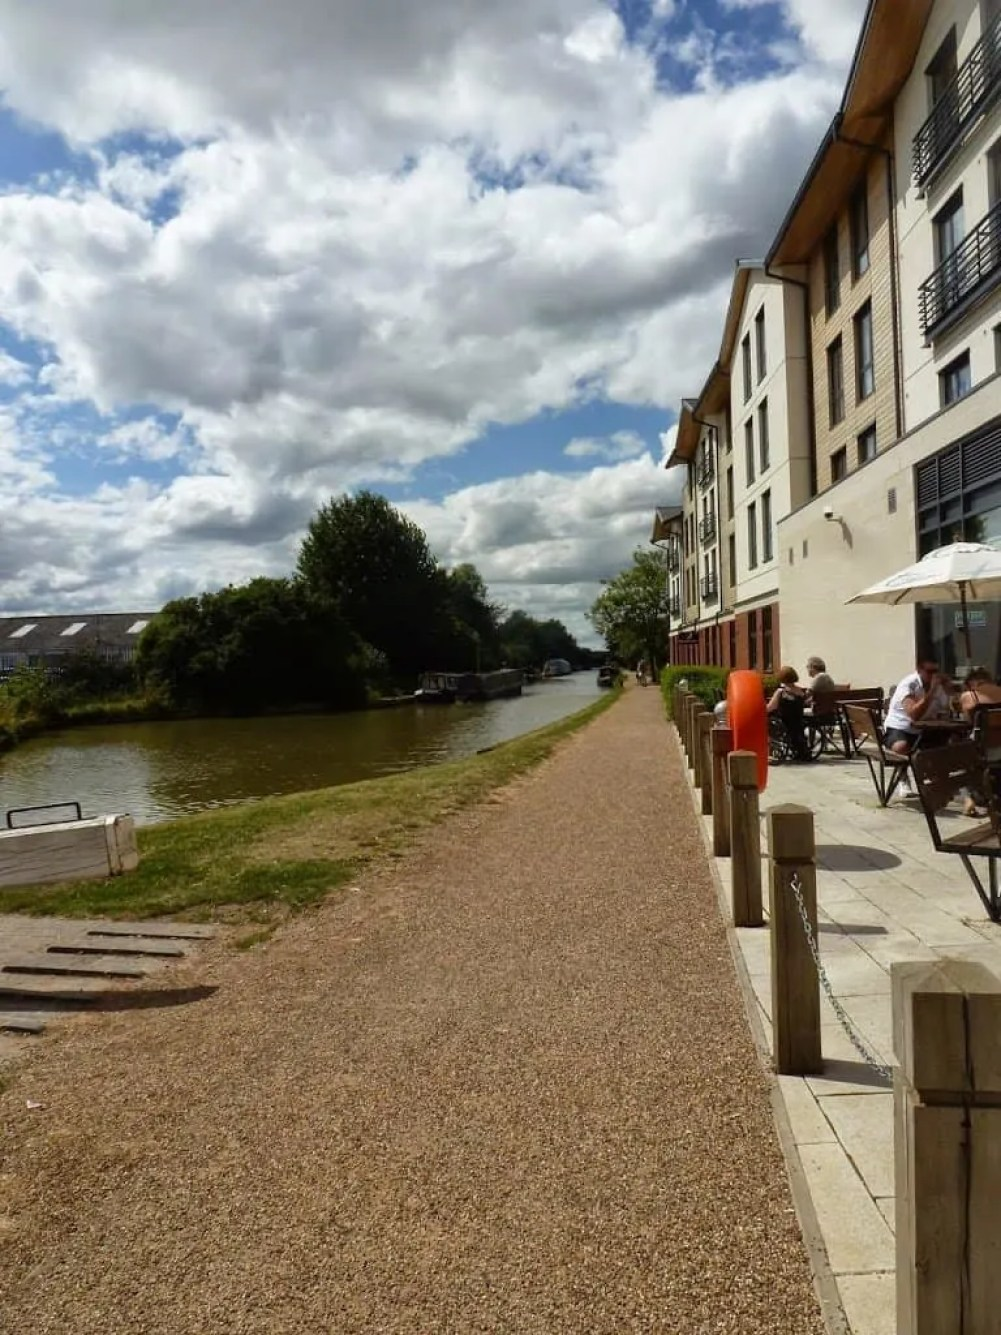 Premier Inn Waterway's Hotel is a great budget hotel in Stratford-Upon-Avon in the perfect location. A wonderful base 5-10 minutes from Stratford-Upon-Avon town centre which is great for family trips and holidays.